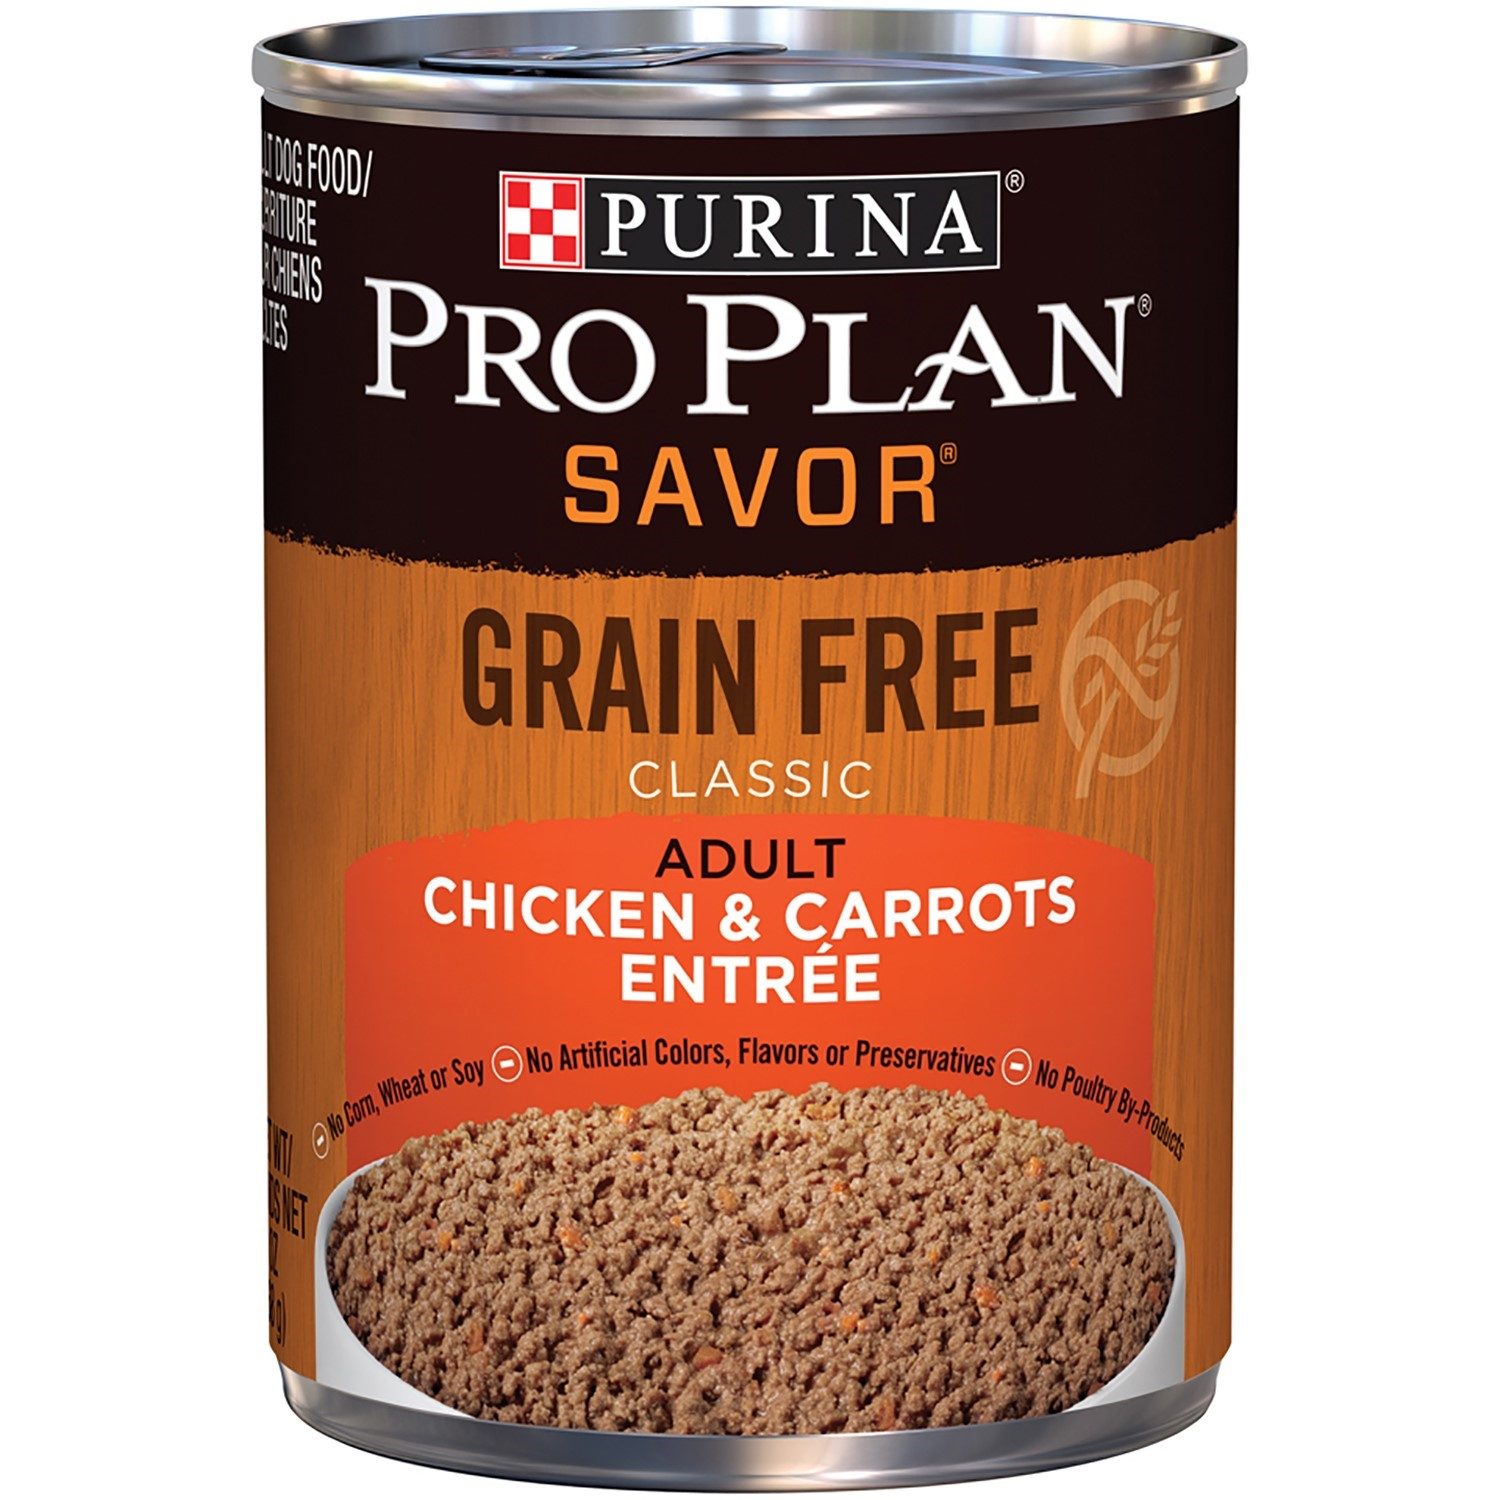 Purina Pro Plan SAVOR Grain-Free Classic Chicken & Carrots Entree Adult Wet Dog Food, Twelve (12) 13 oz. Cans